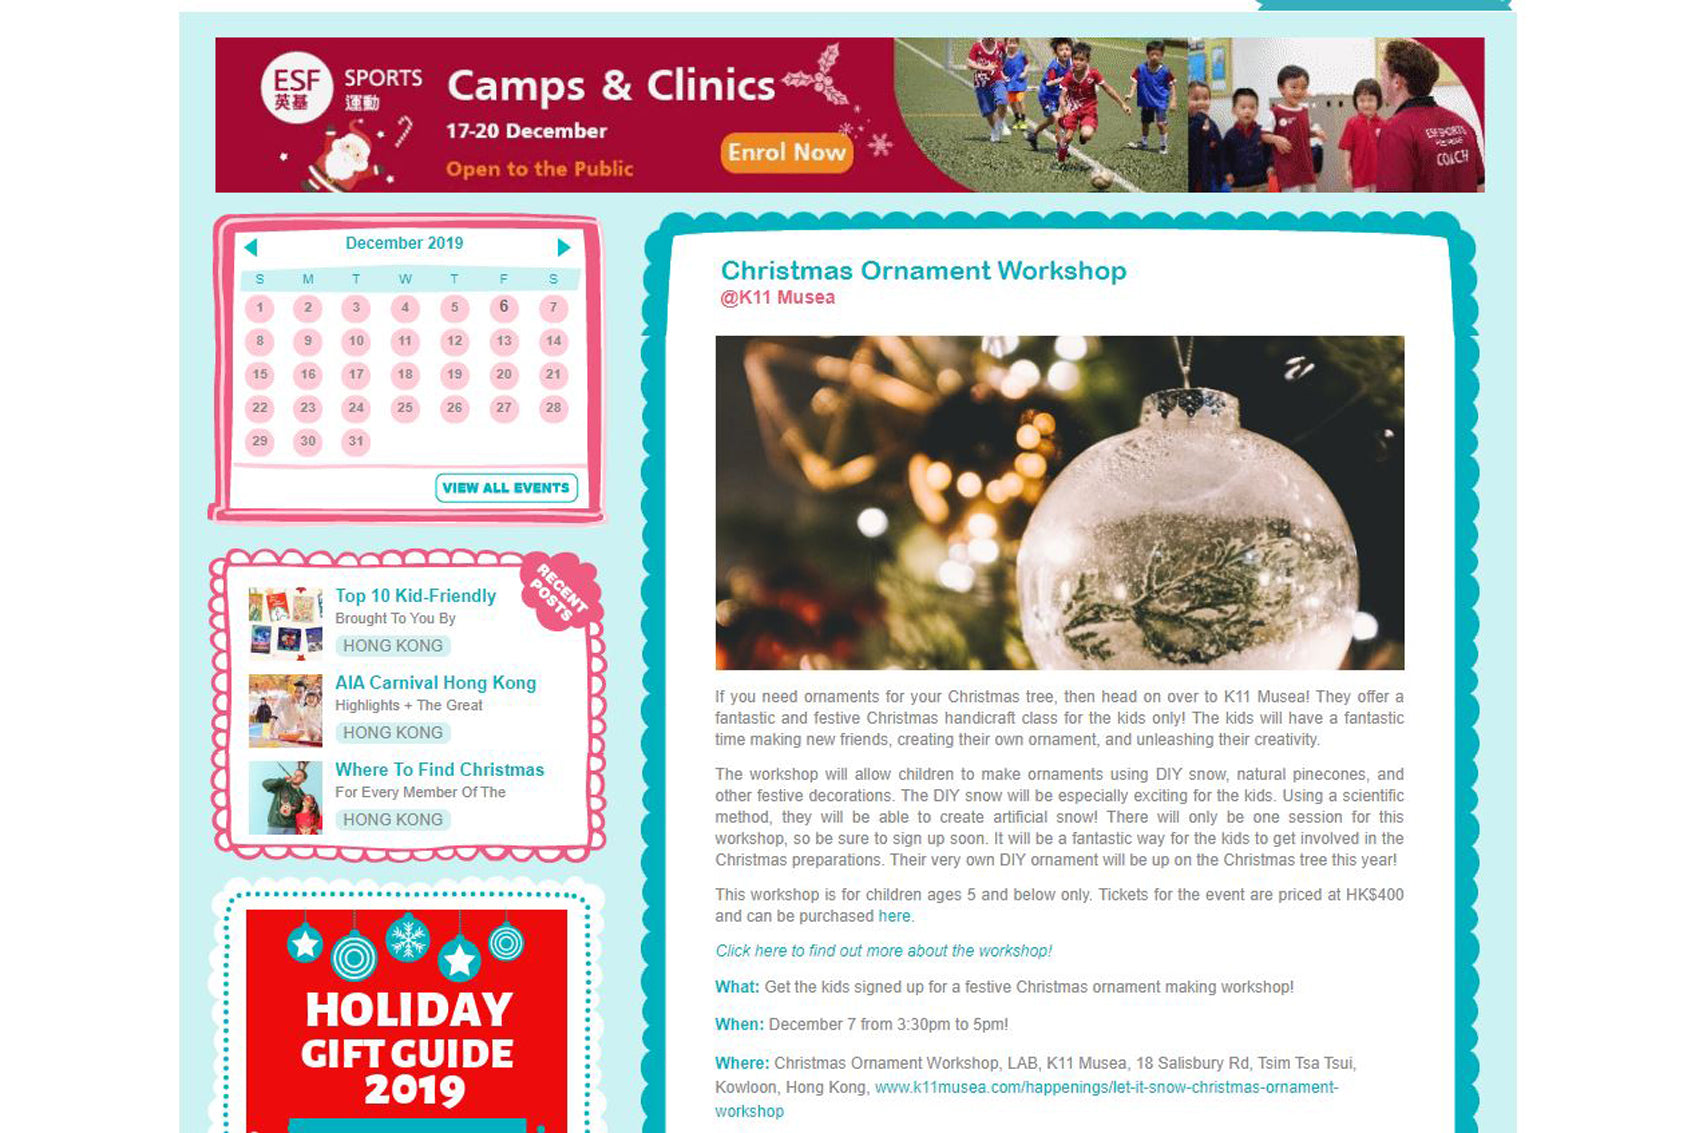 Featured in Little Steps Asia: Christmas Ornament Workshop @K11 Musea